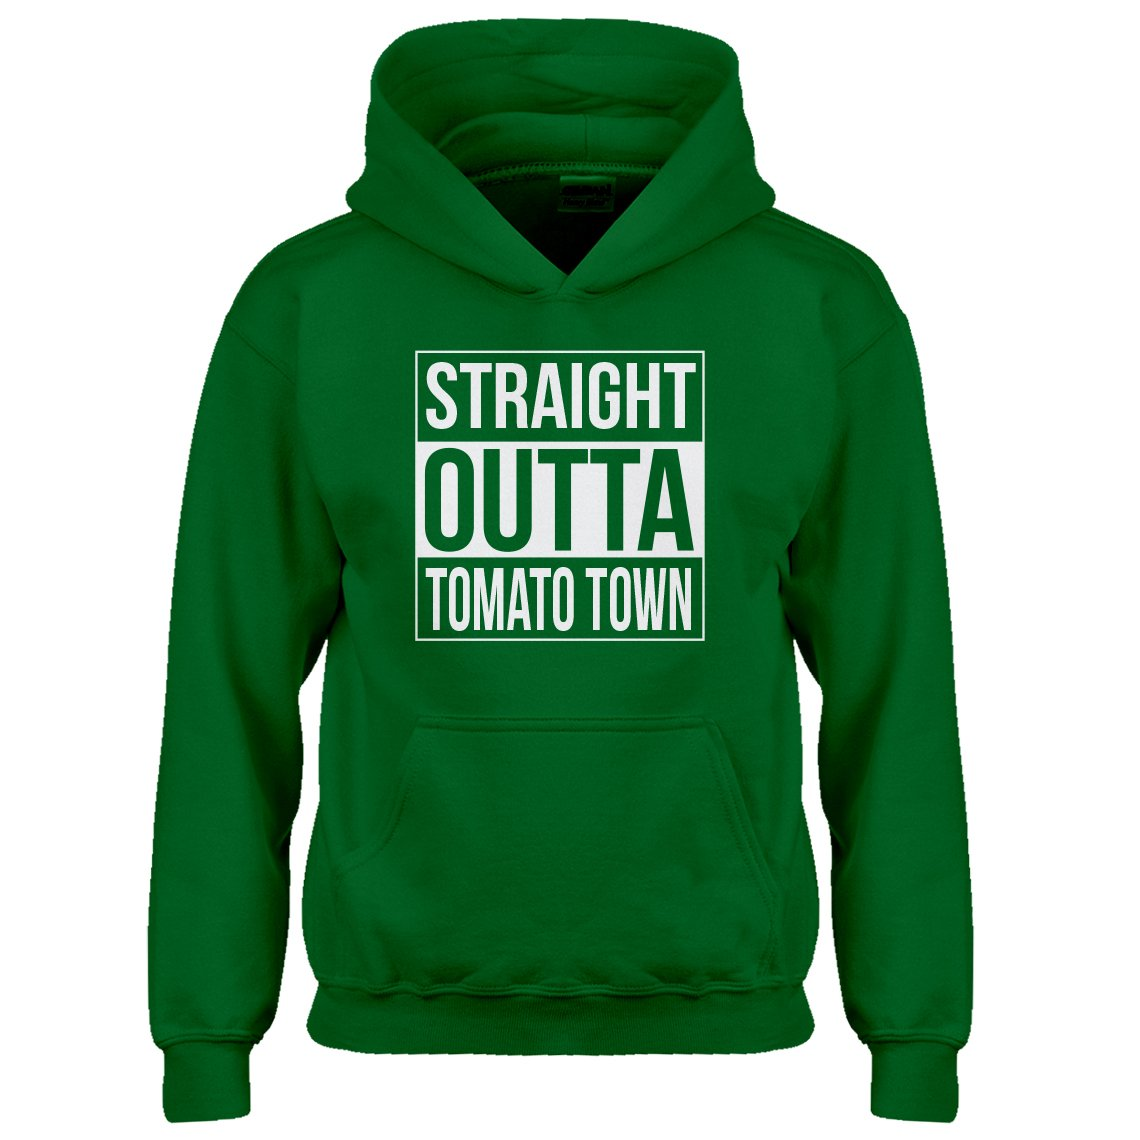 Indica Plateau Straight Outta Tomato Town Kids Hoodie 3339-Z